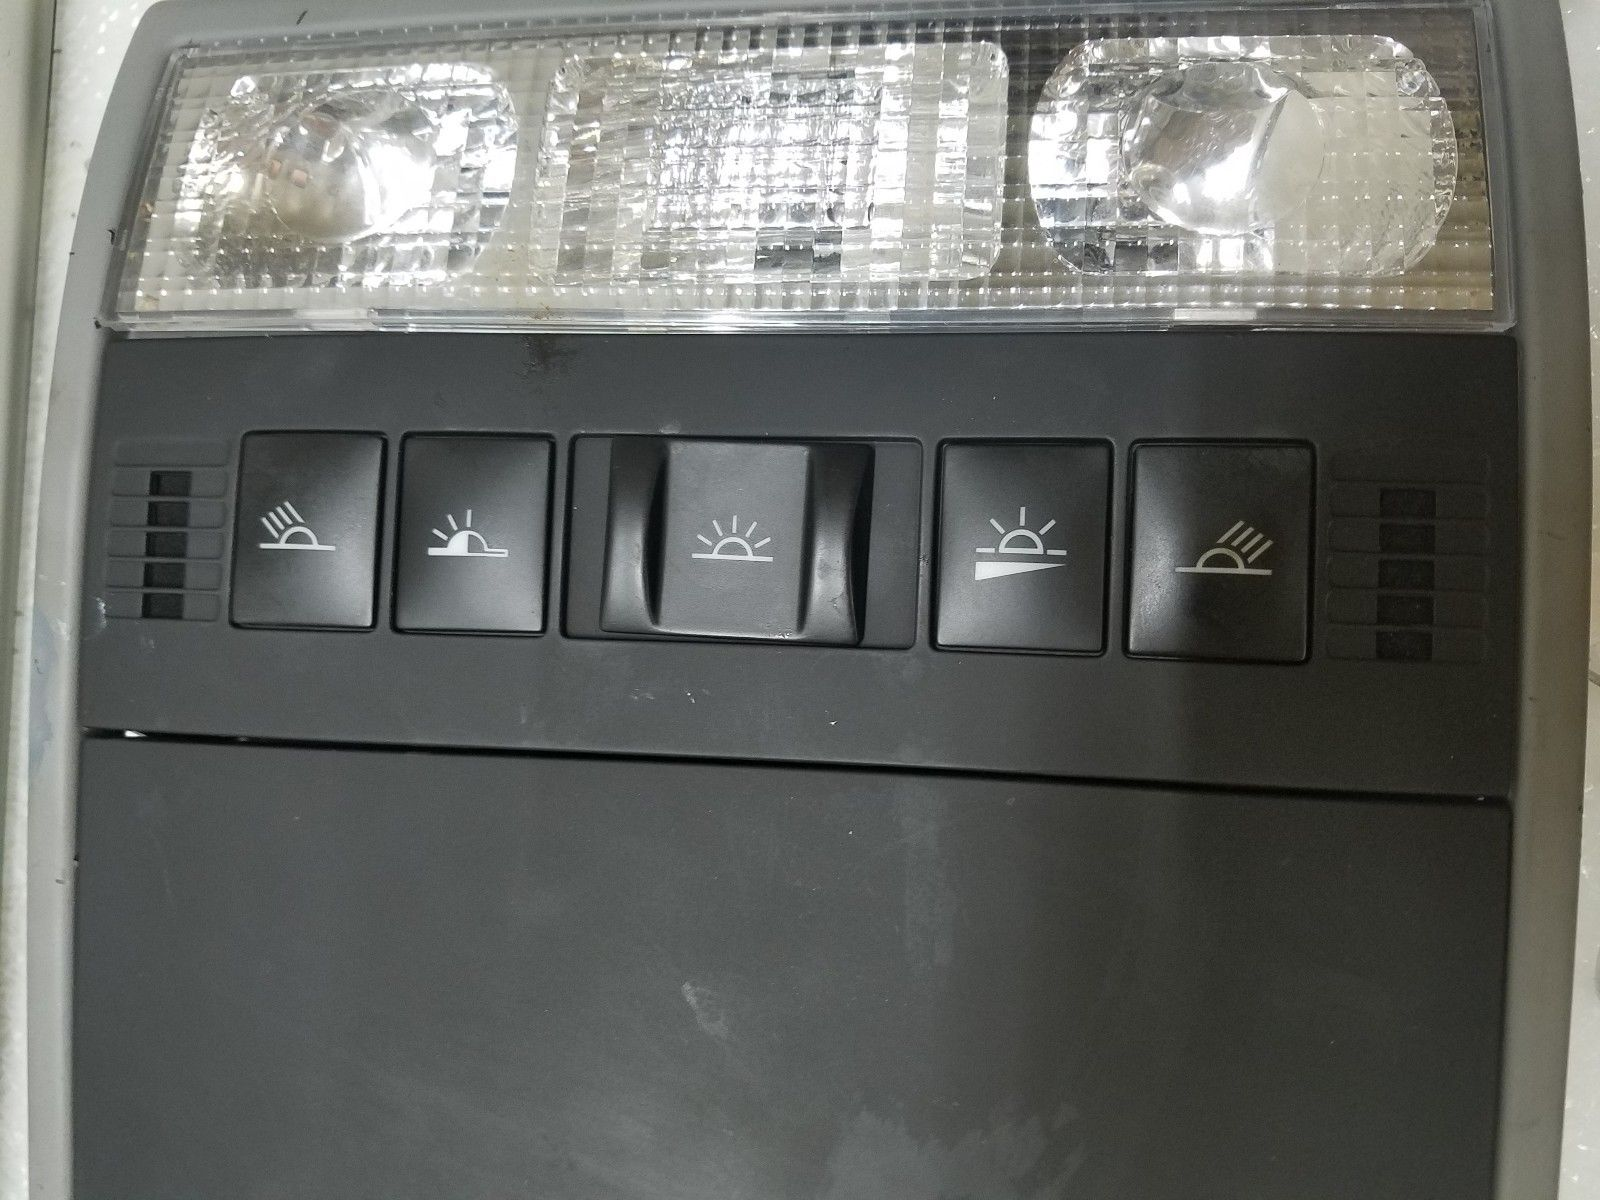 2003-2006 PORSCHE CAYENNE SUNROOF SWITCH DOME LIGHT 7L5868403 Does not apply